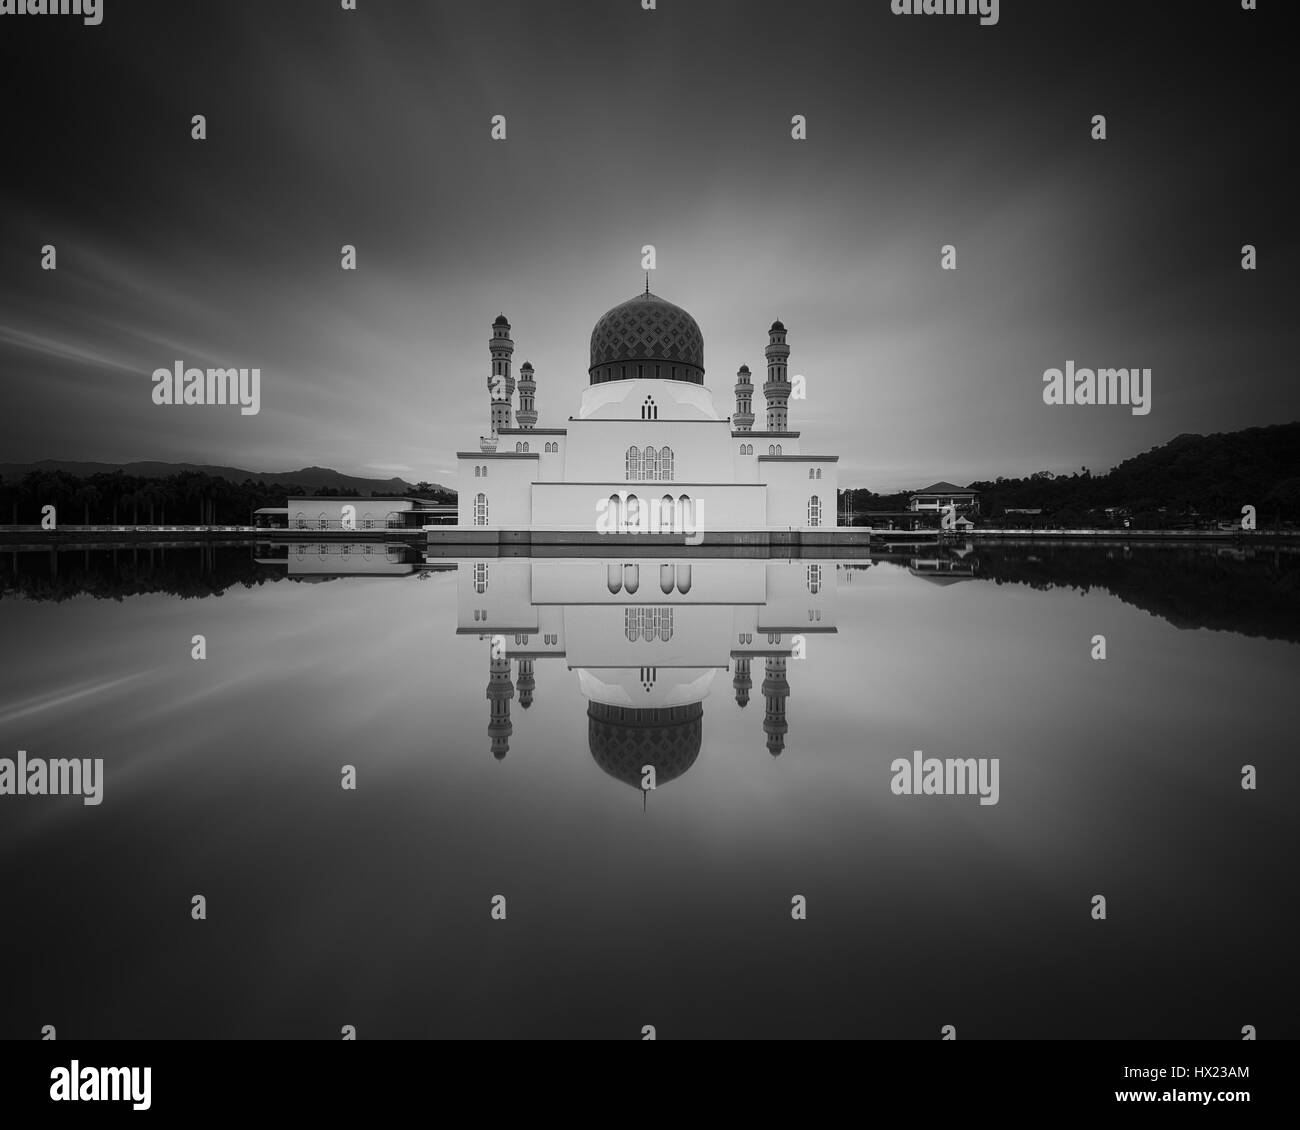 Likas Mosque In Black & White - Stock Image